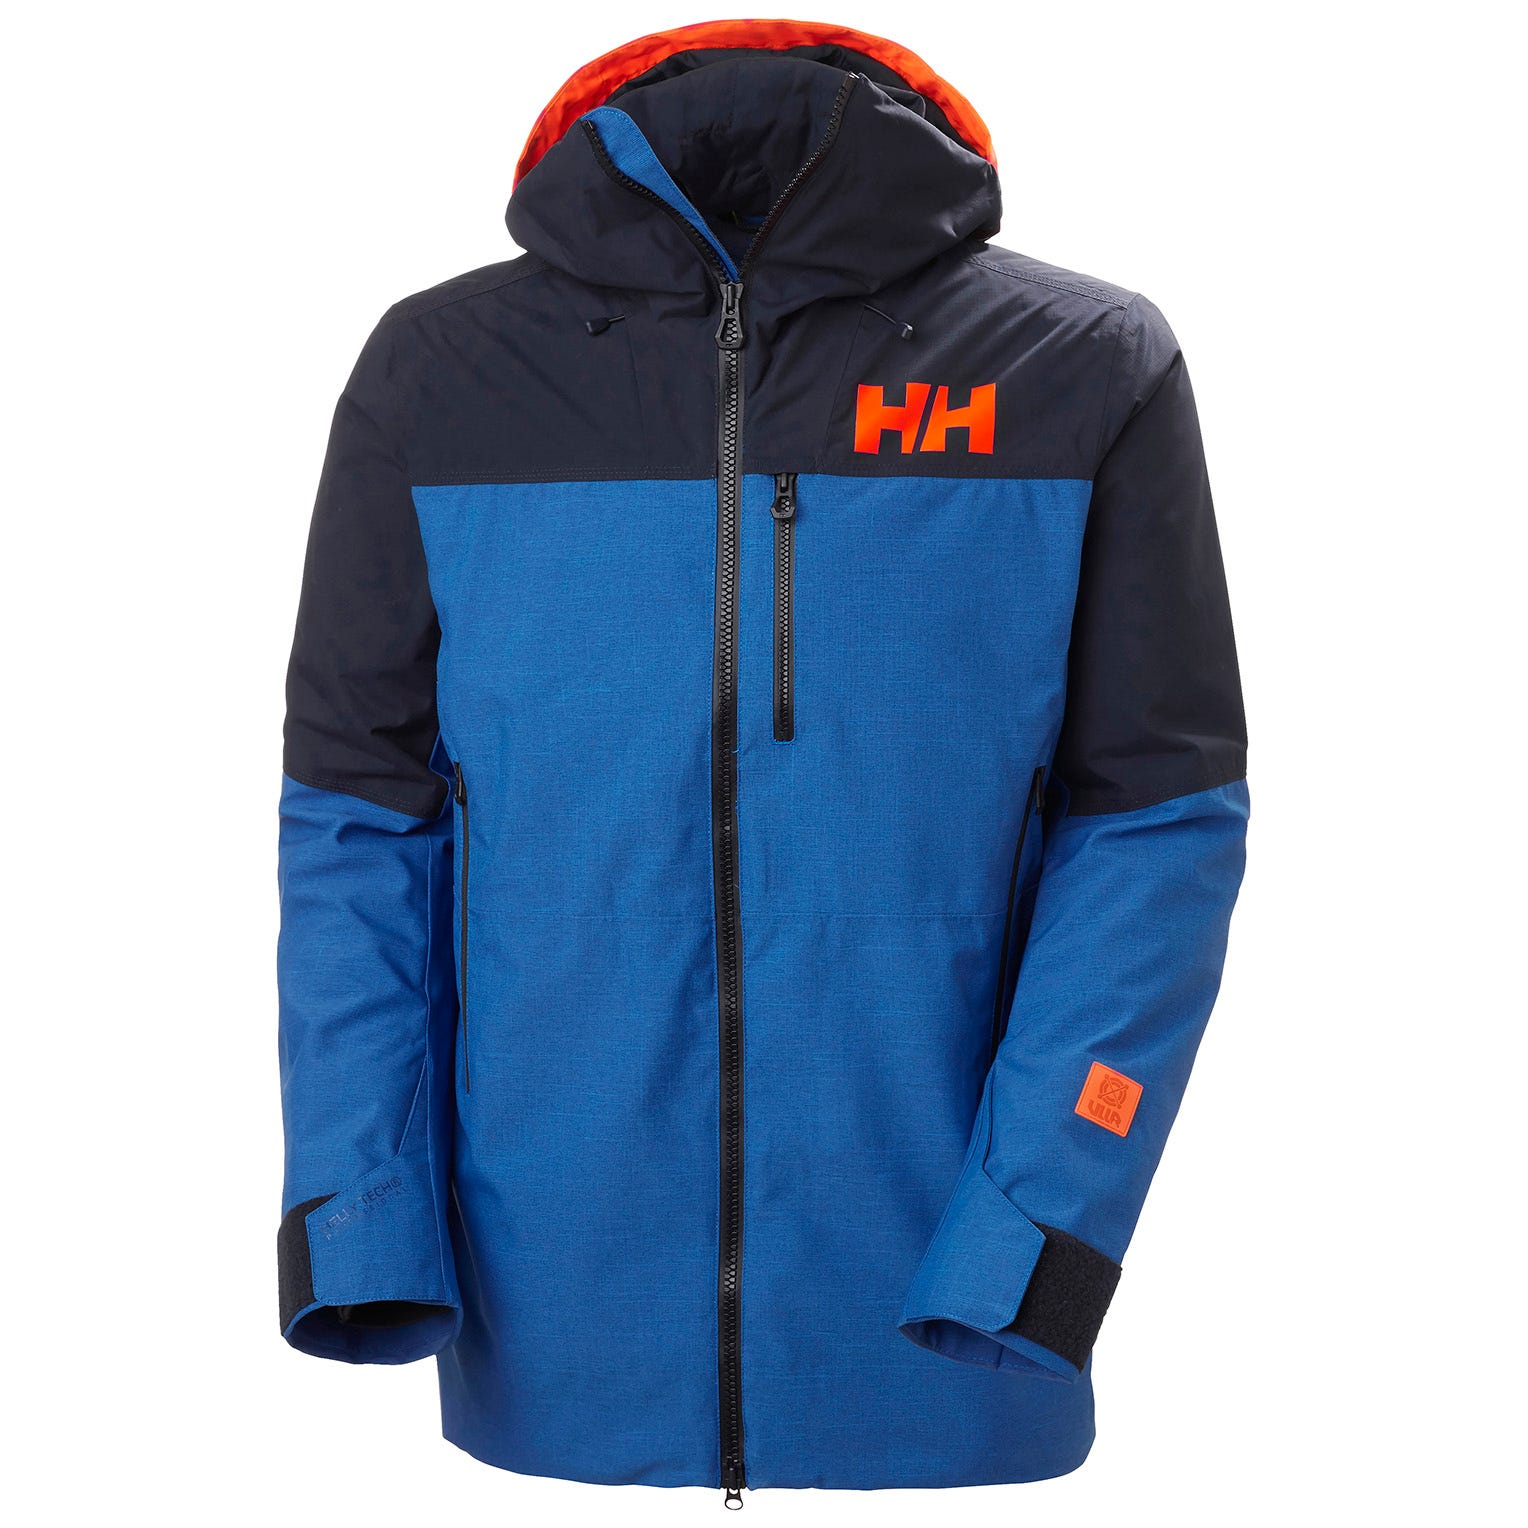 Mens Straightline Lifaloft Light Ski Jacket | Helly Hansen Mens Blue XL